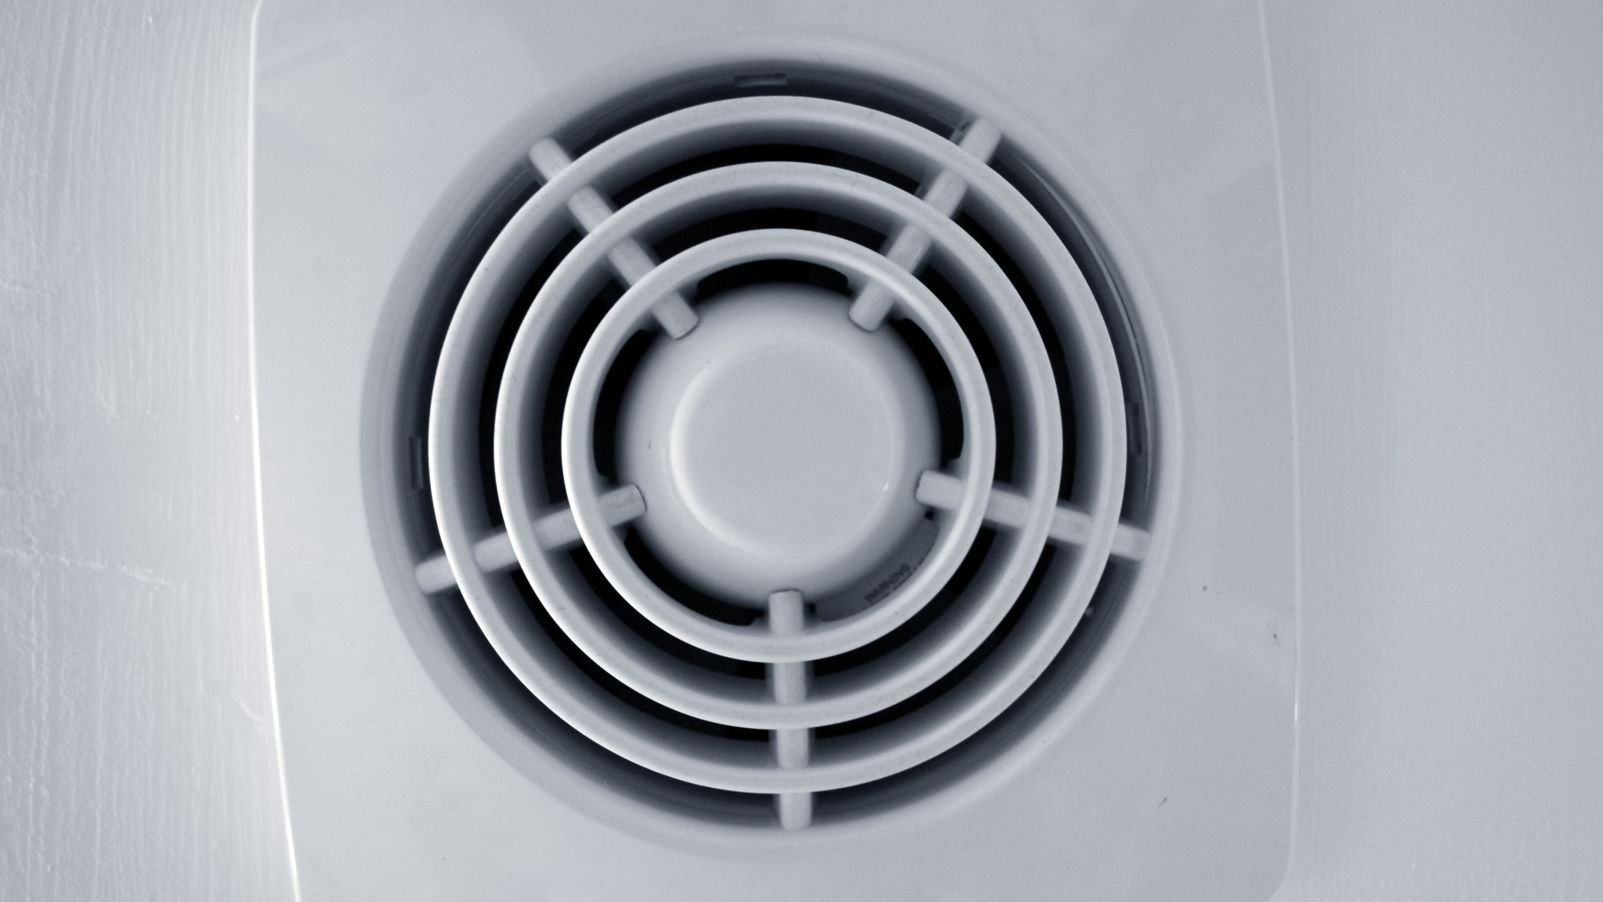 Bathroom Exhaust Fan Venting Code Basics